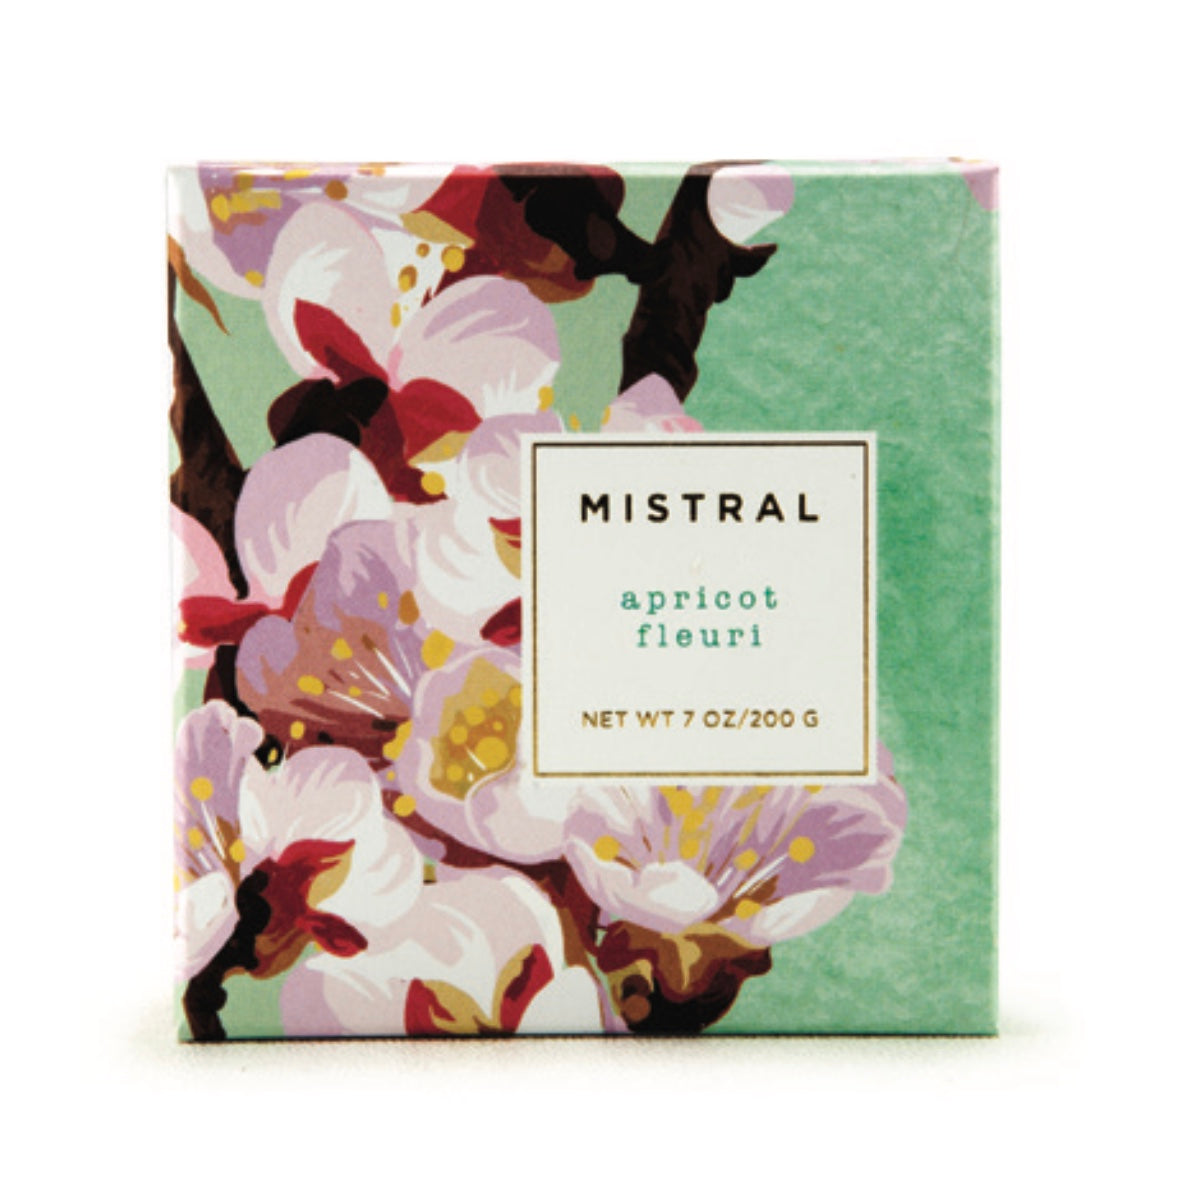 Mistral Floral Collection Soap - Apricot Fleuri, ME-M-Mistral, Putti Fine Furnishings